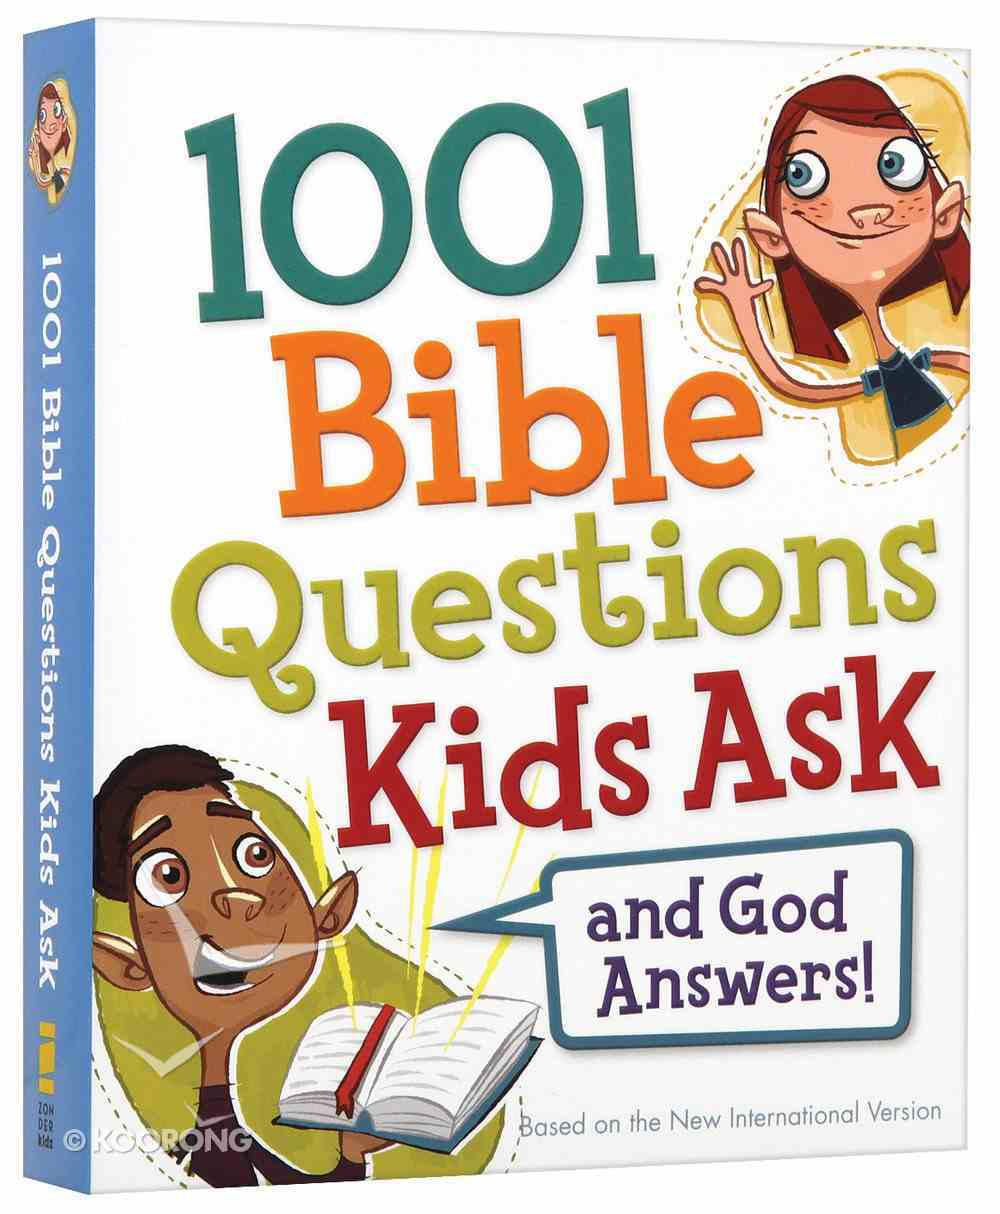 1001 Bible Questions Paperback